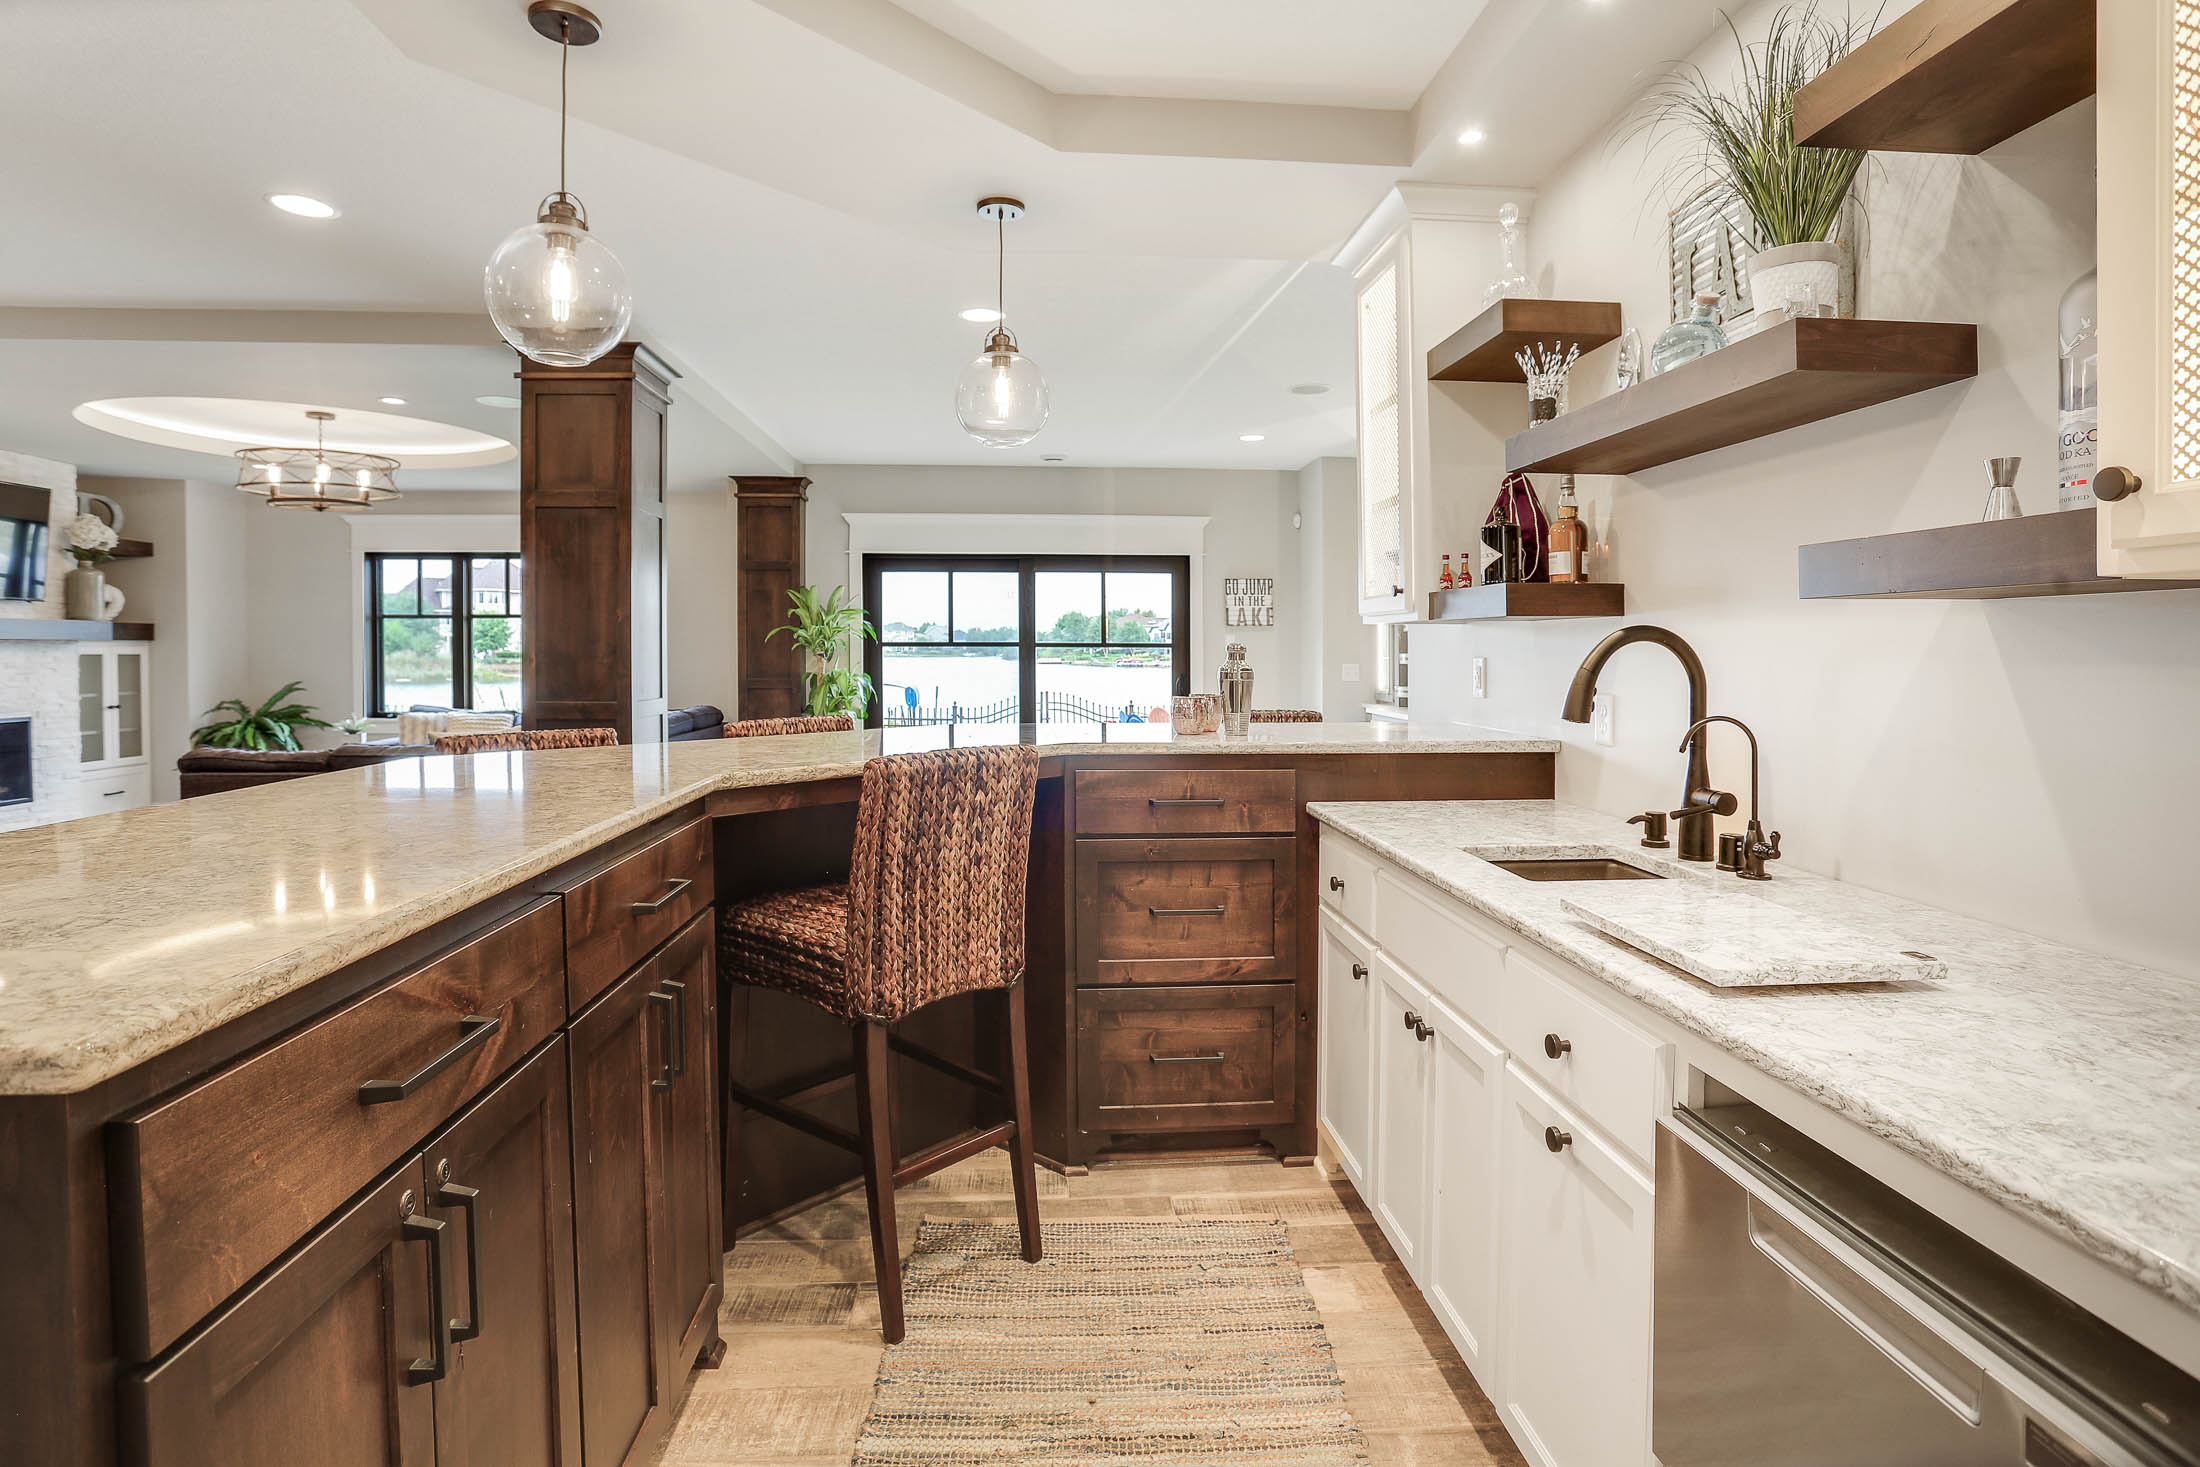 Knotty Alder- shaker style island cabinetry